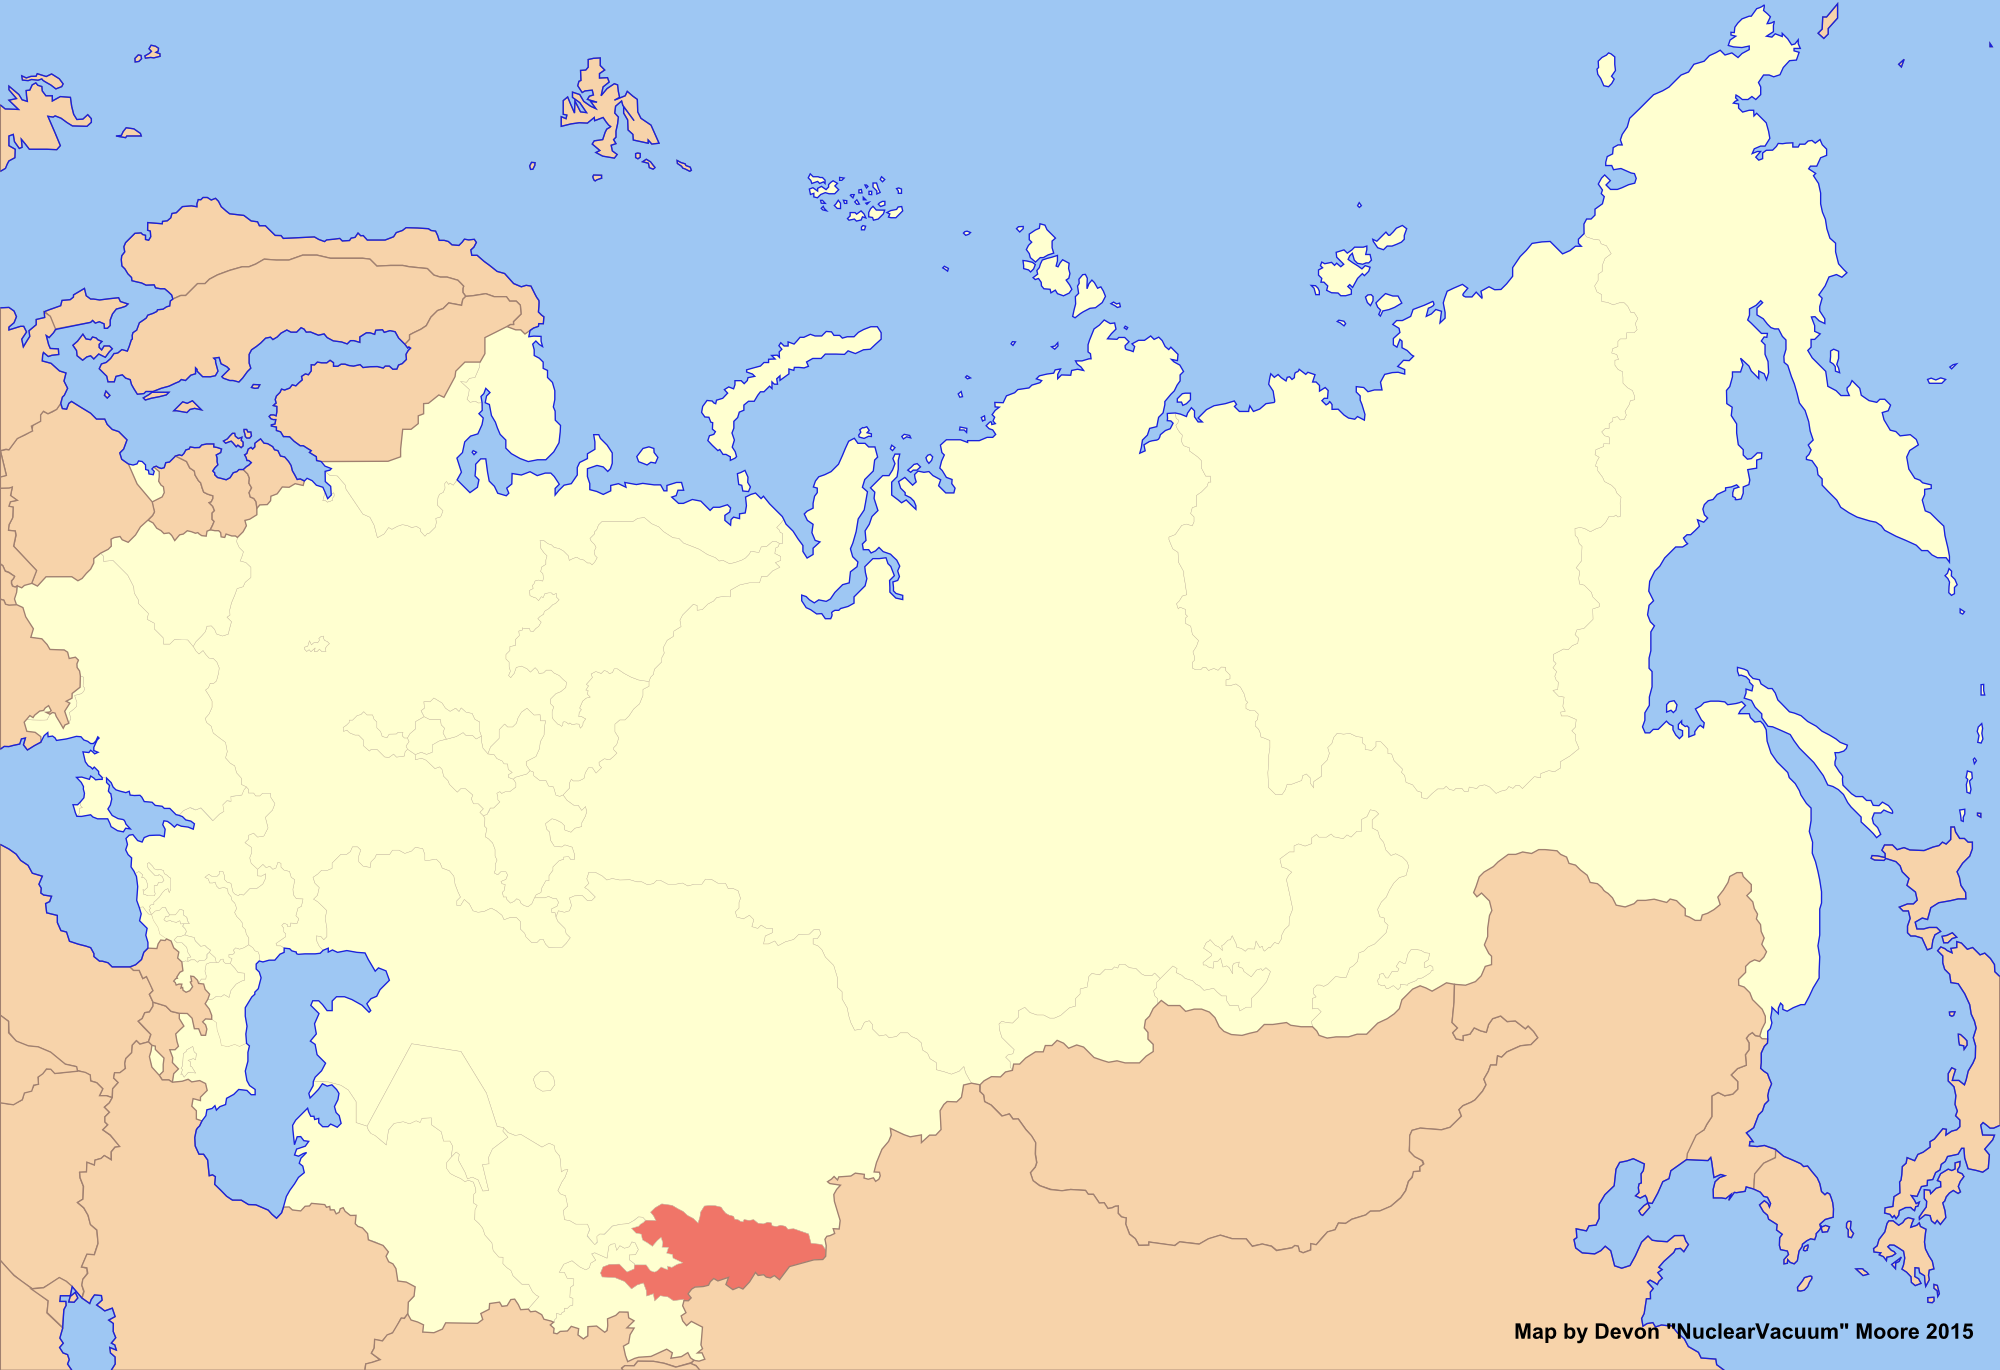 Image location of kyrgyzstan new uniong alternative history location of kyrgyzstan new uniong gumiabroncs Choice Image